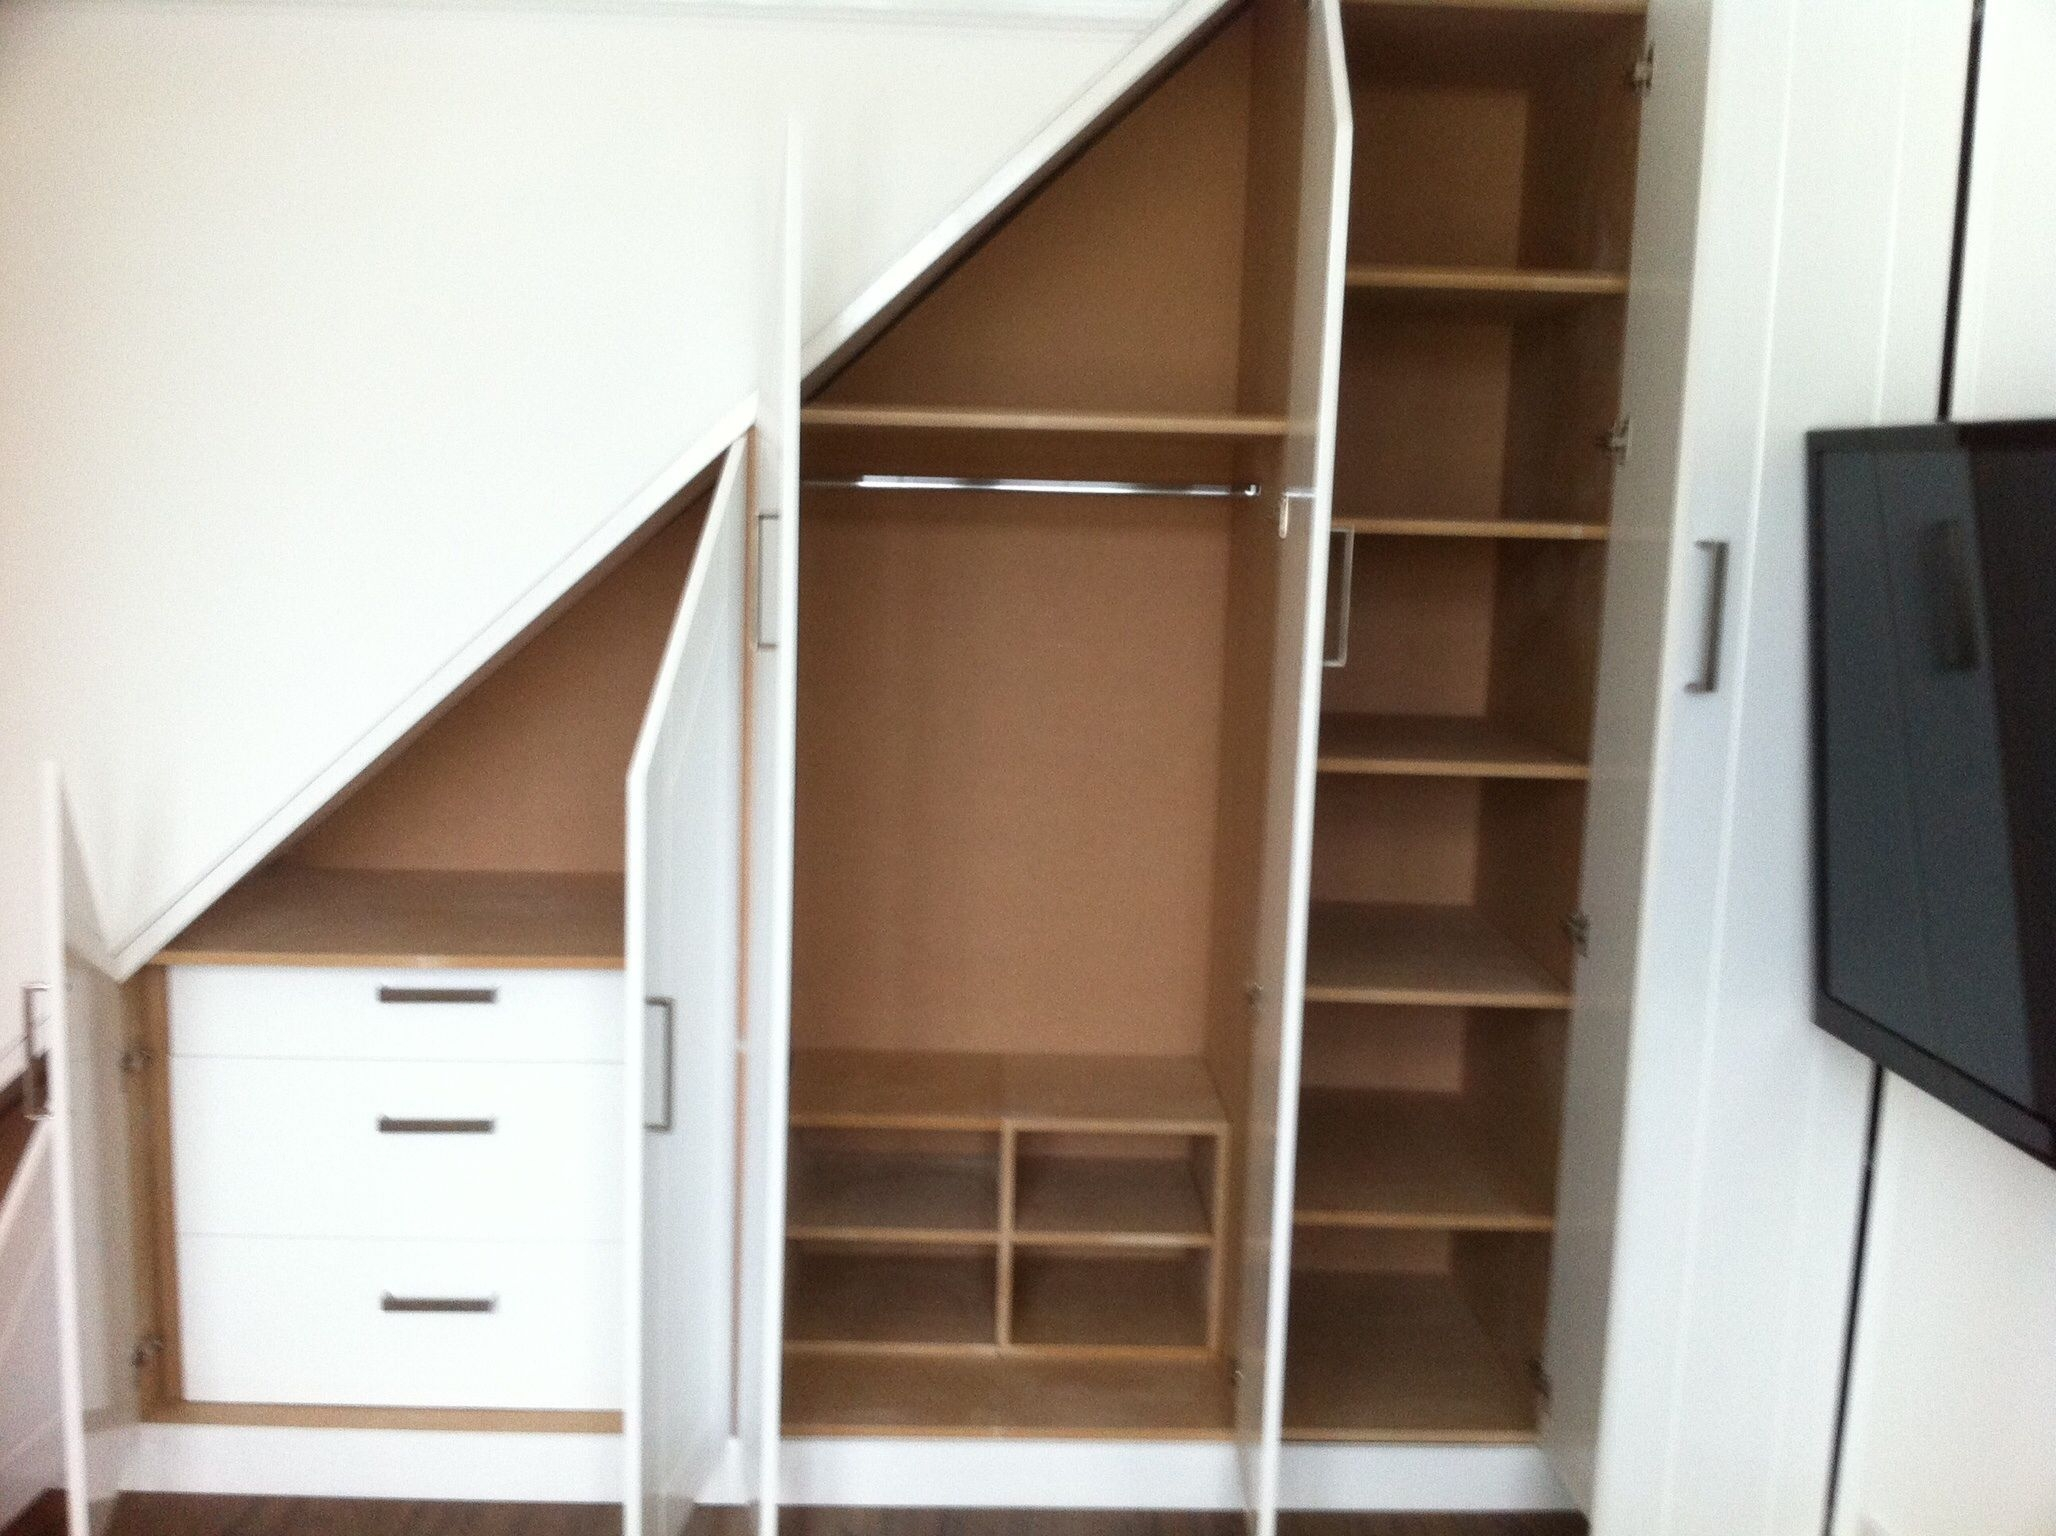 Let S Build A Cupboard Under The Stairs – Staircase Design | Cabinet Design Under Stairs | Tv Stand | Stairs Storage Ideas | Kitchen | Shelves | Staircase Ideas